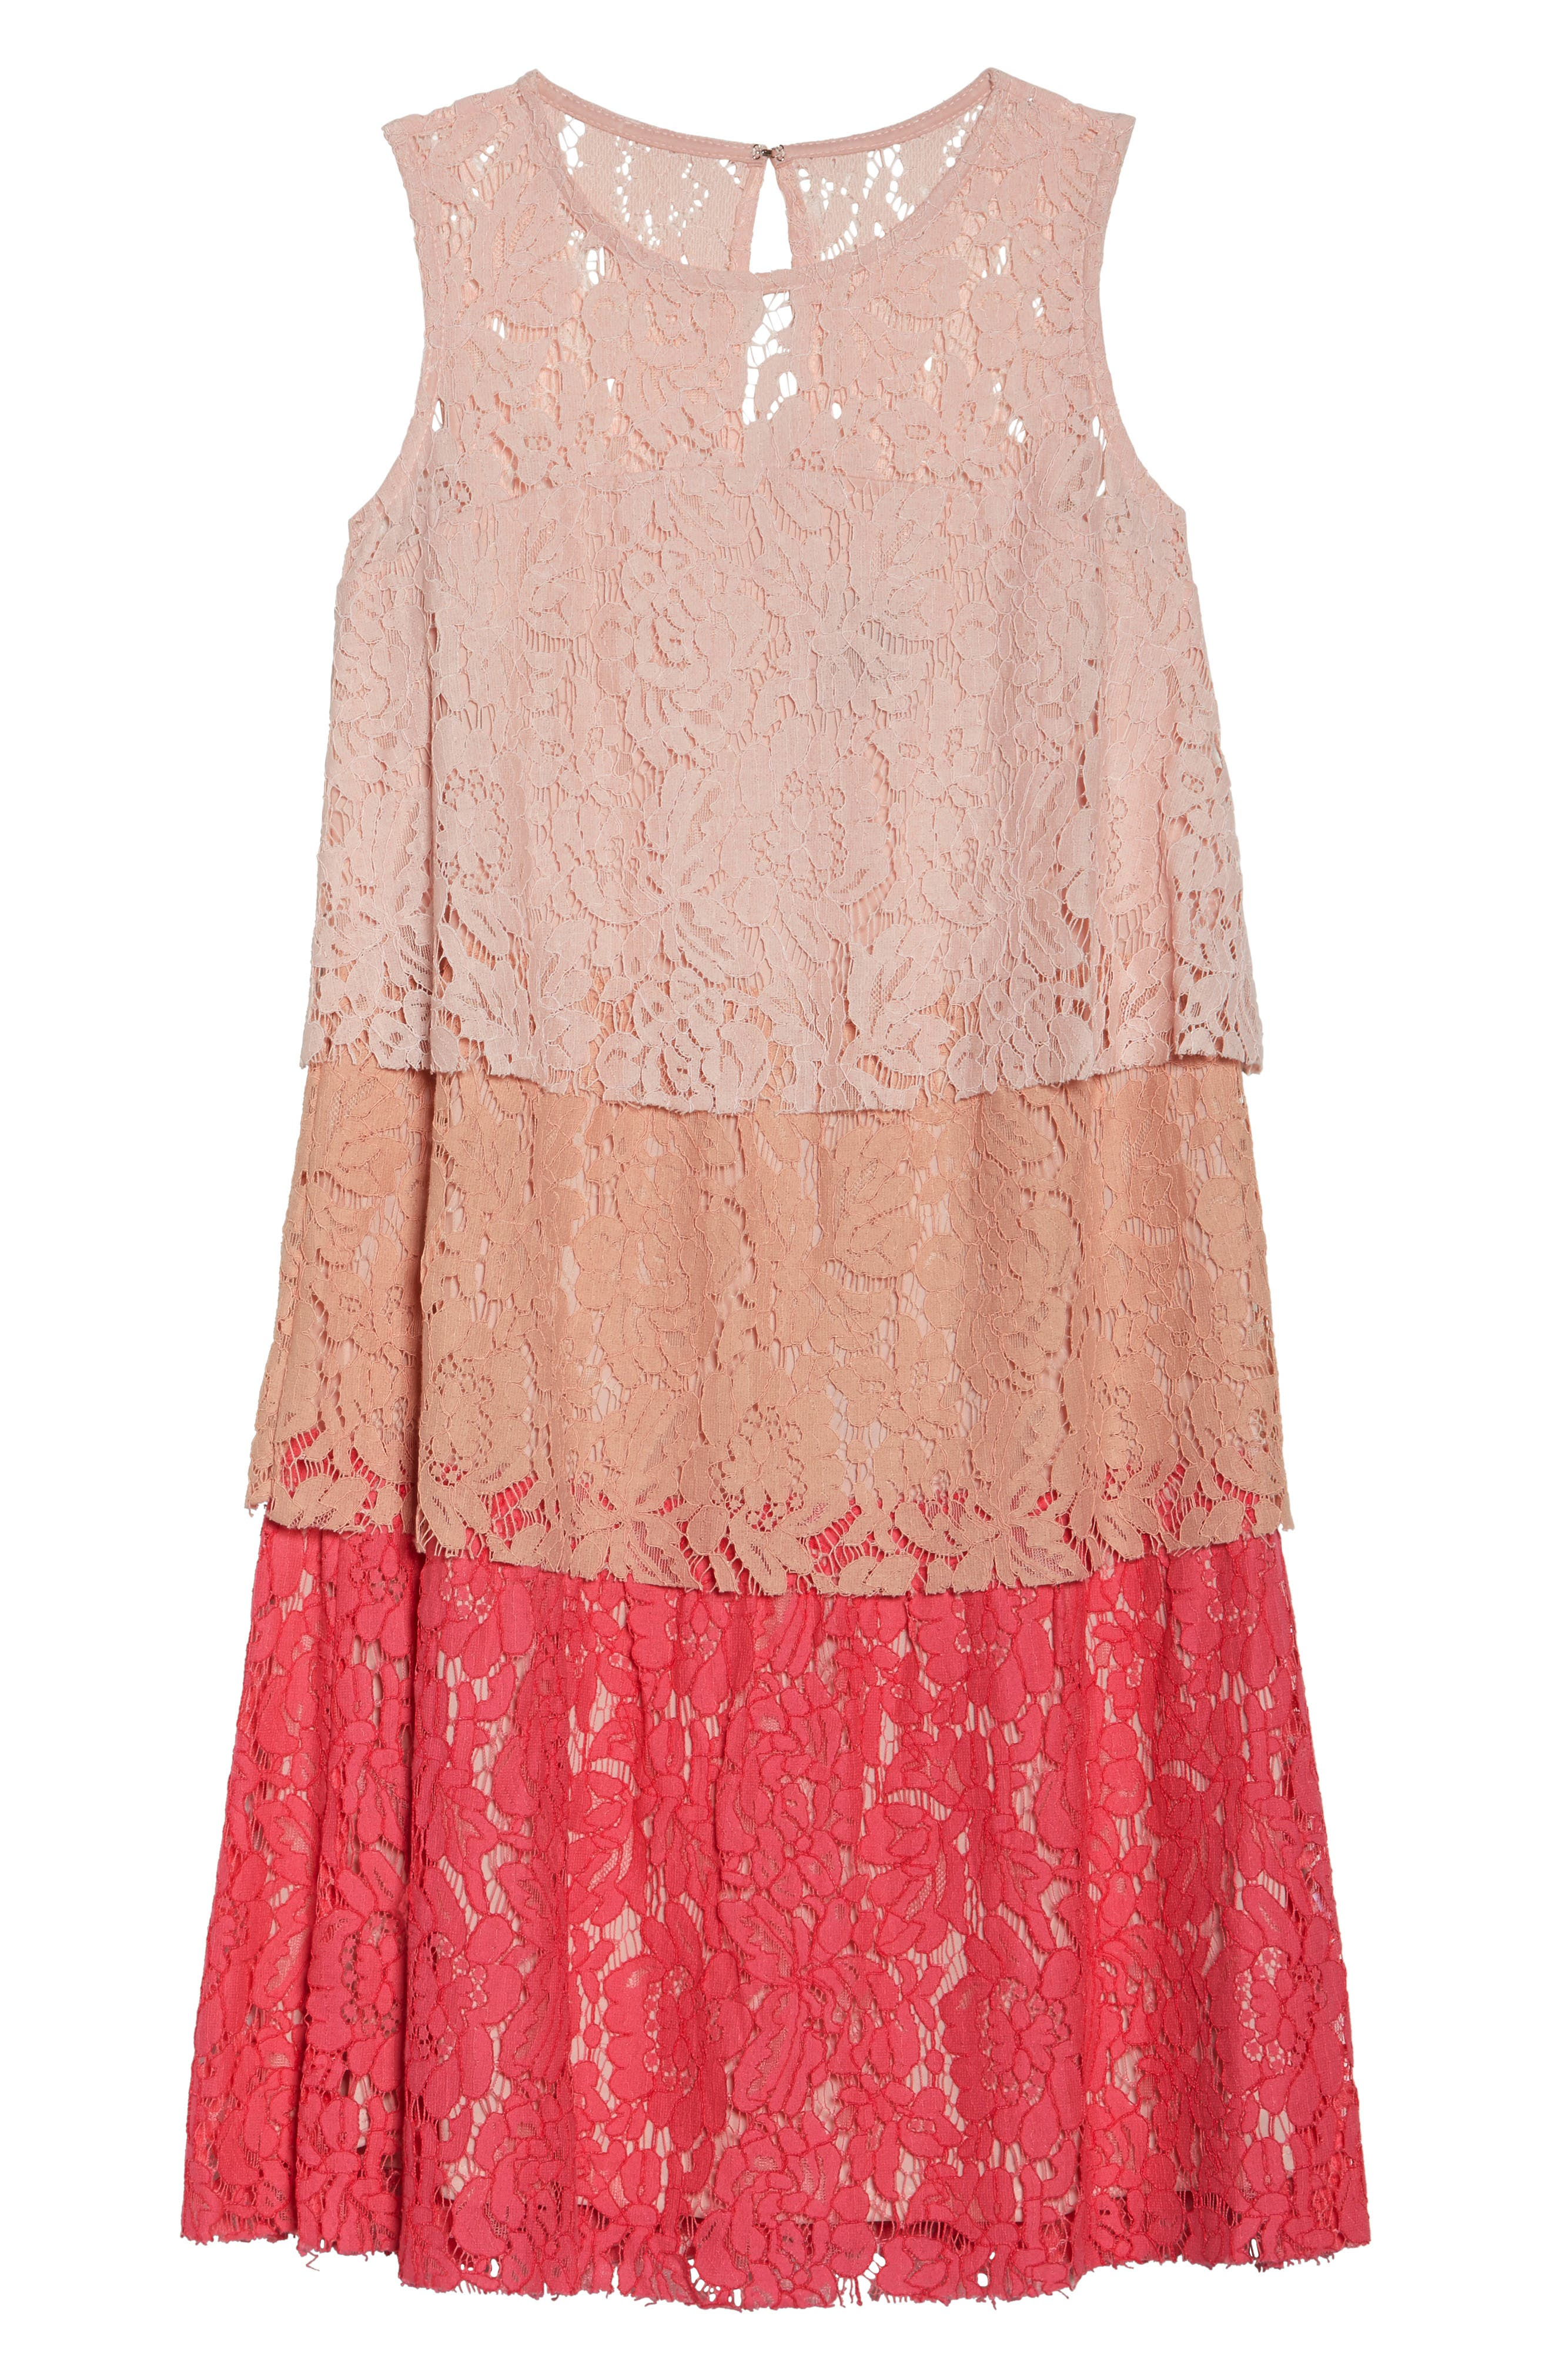 Sleeveless Tiered Lace Dress,                             Alternate thumbnail 6, color,